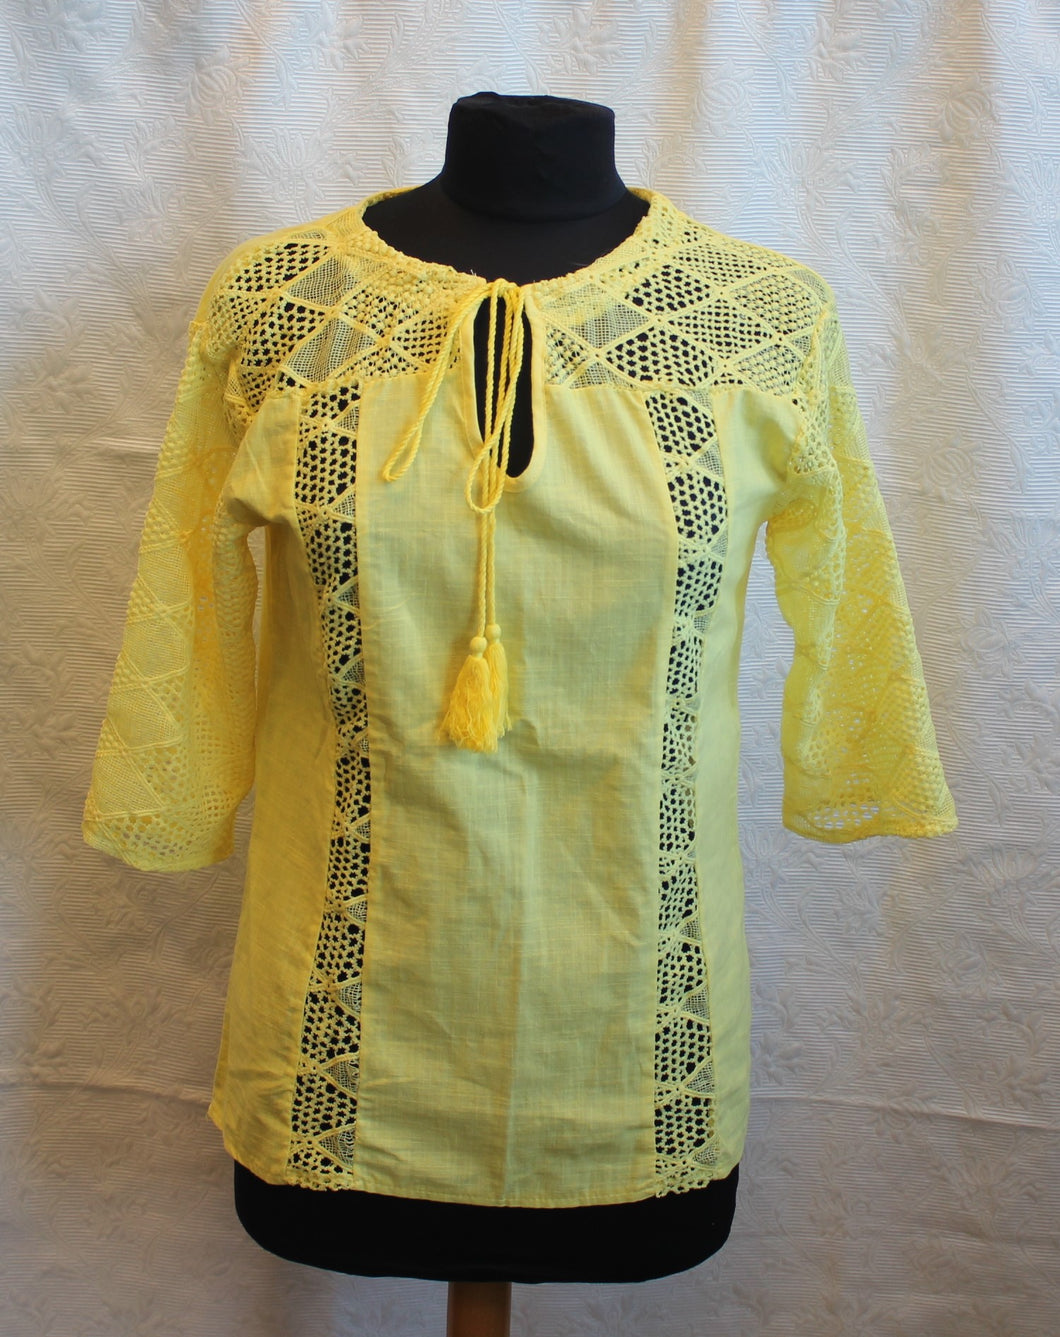 Women's Blouse - Long Sleeve - Yellow  Size 12   3/17A